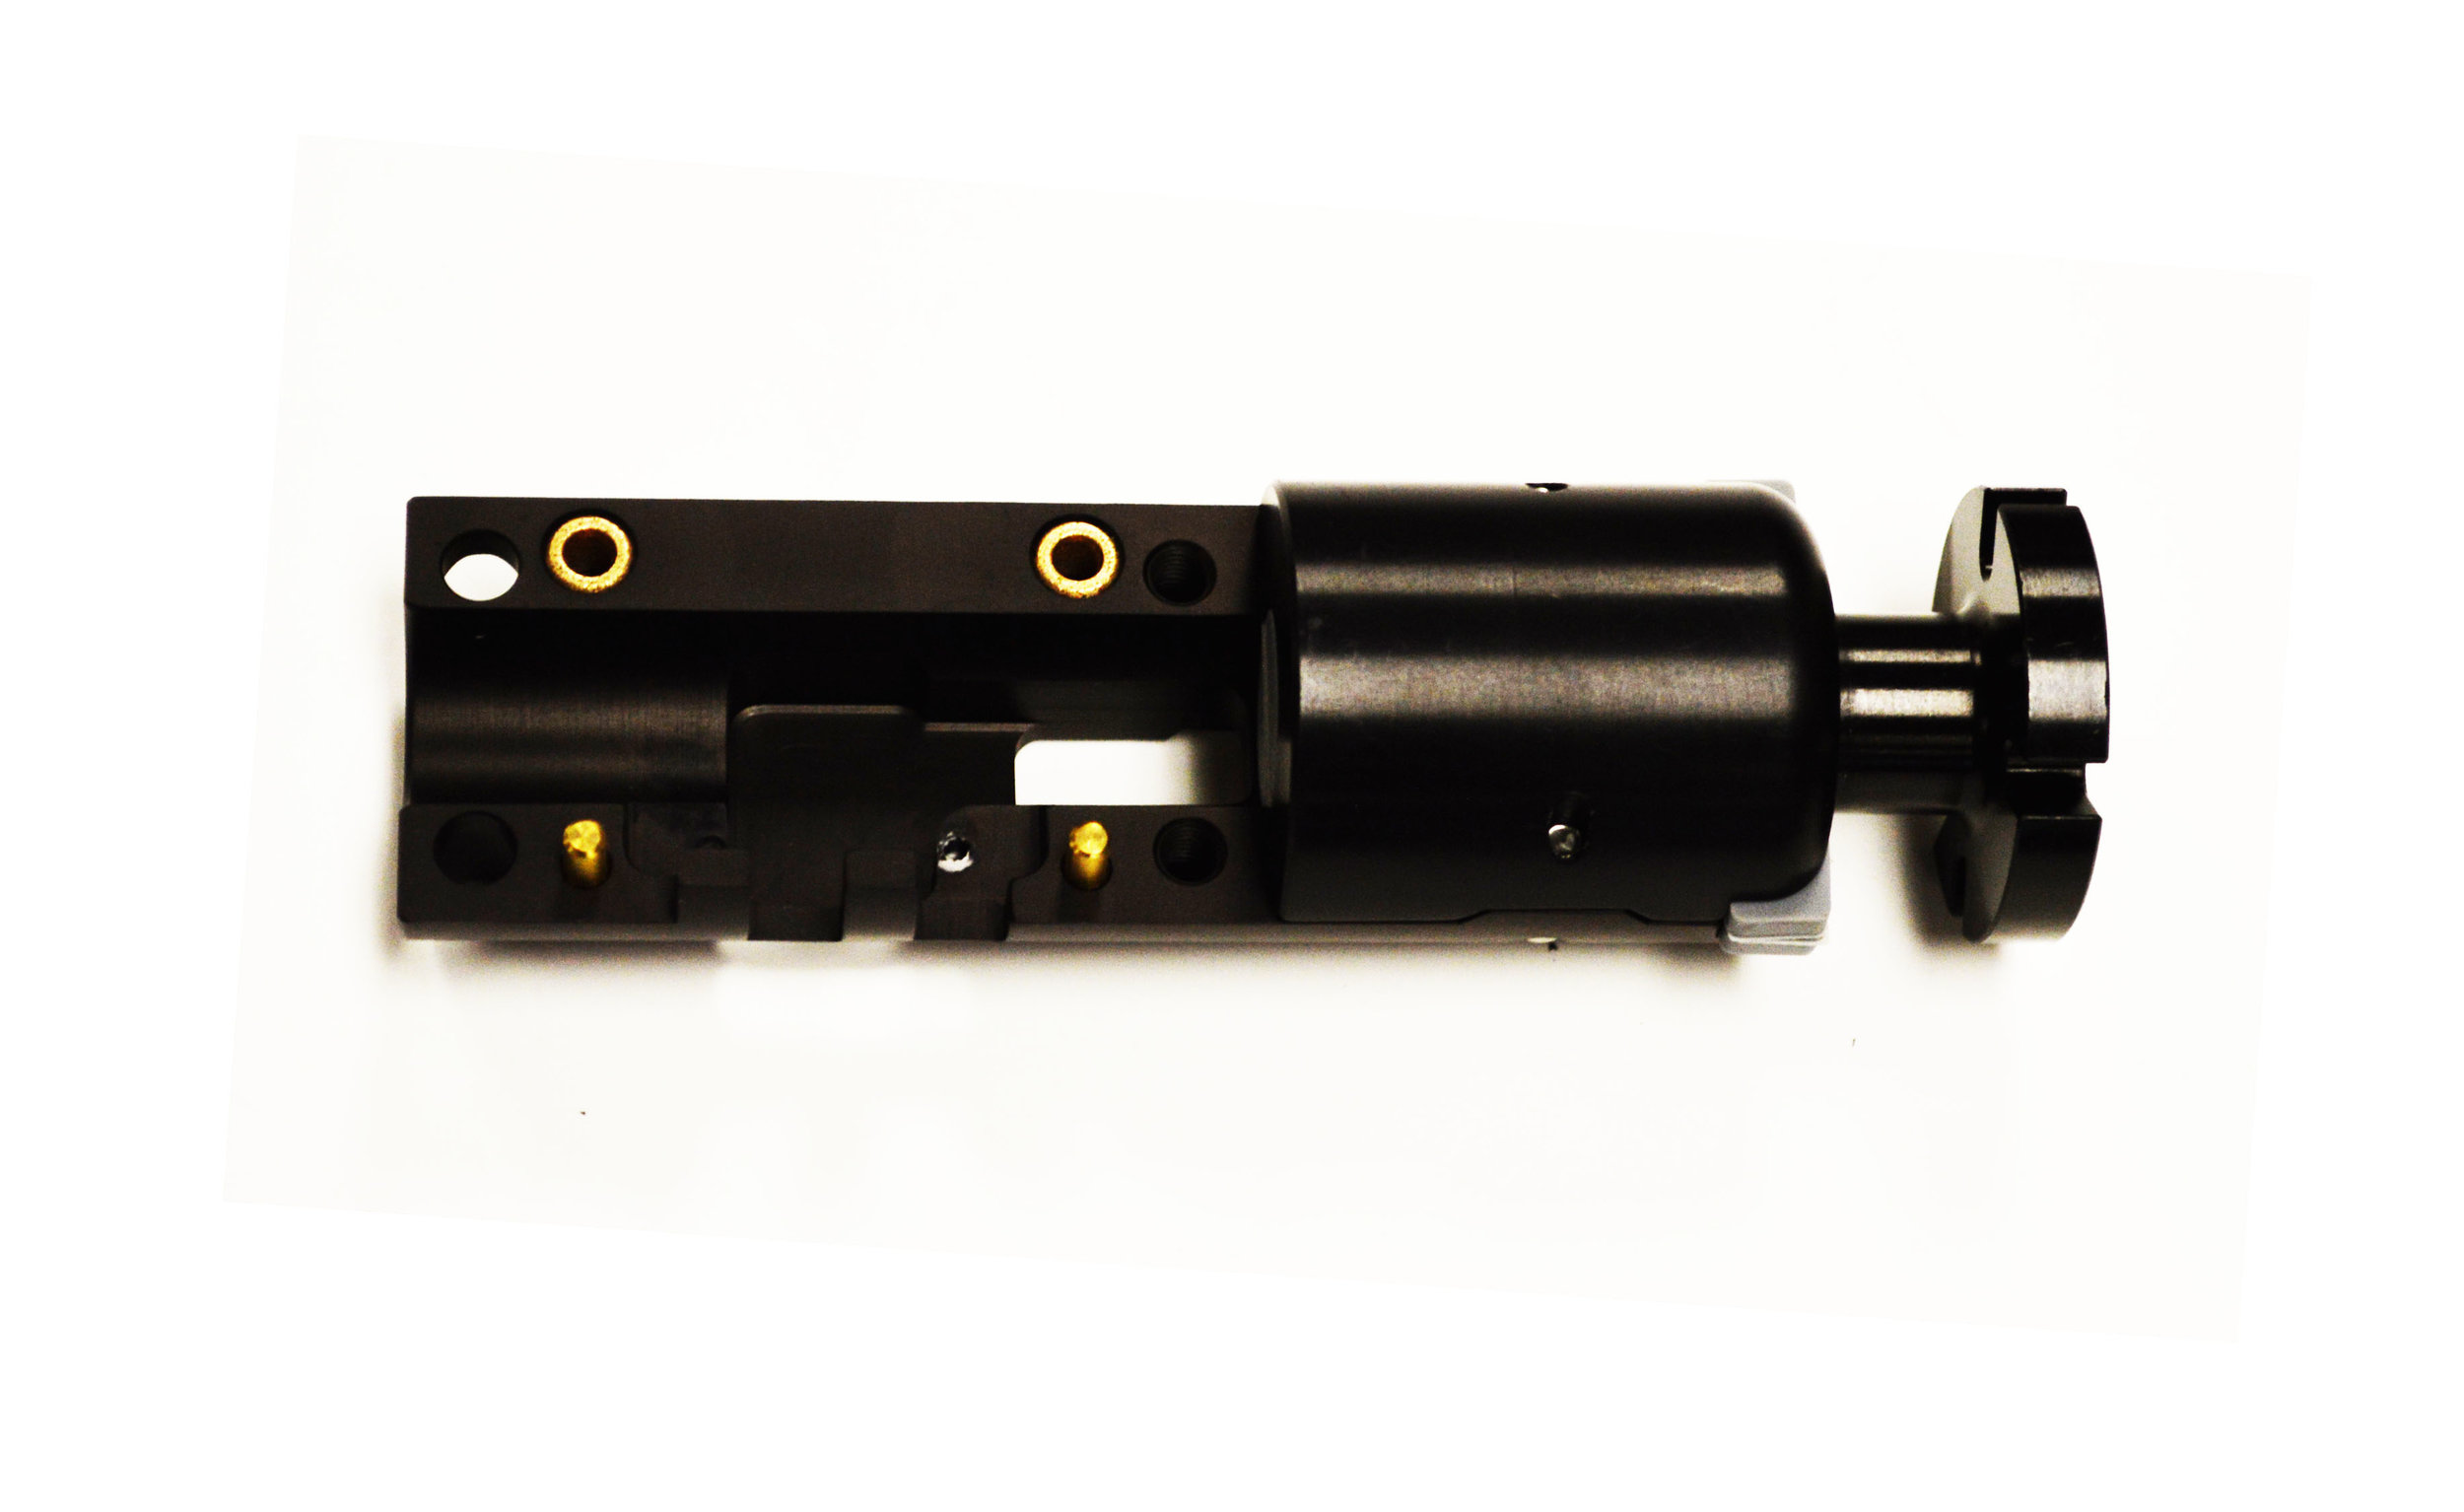 3-Piece Electronic Snubber     Body Only: SMS-5406-MT        Injection: SMS-5407         Insert: SMS-5408